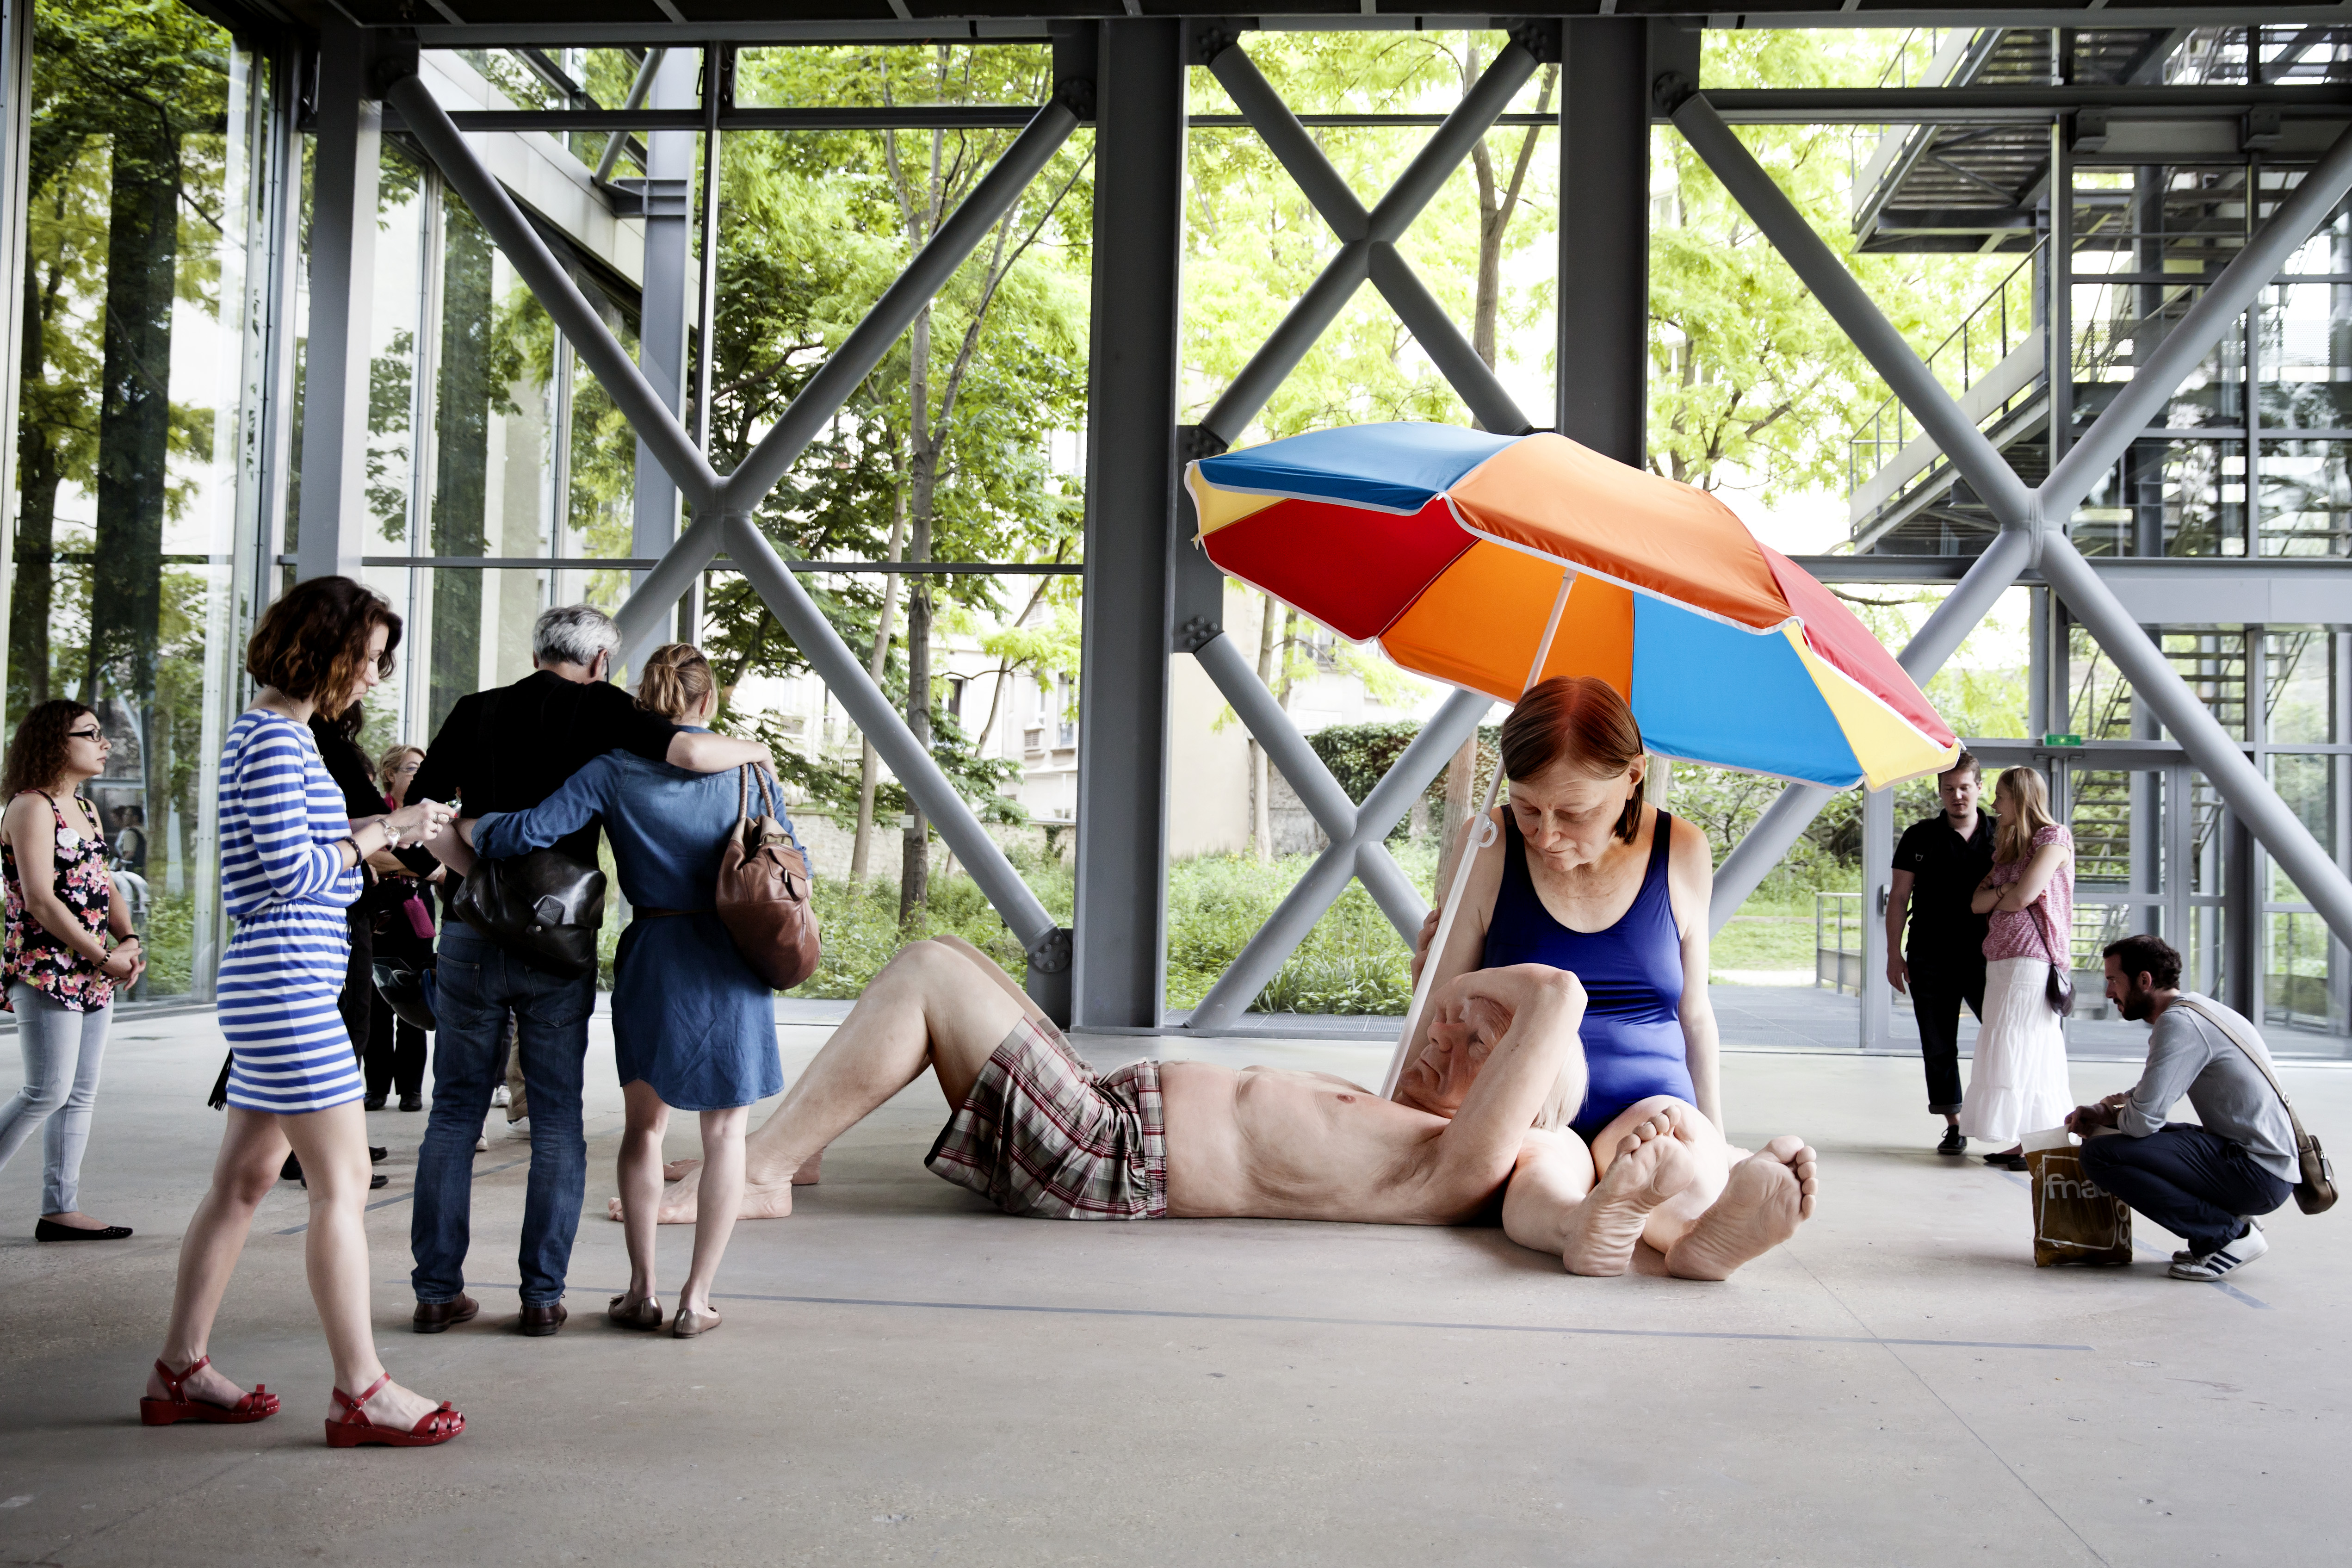 Ron Mueck, Couple Under an umbrella, 2013 Courtesy Hauser & Wirth/Anthony d'Offay, Loondres